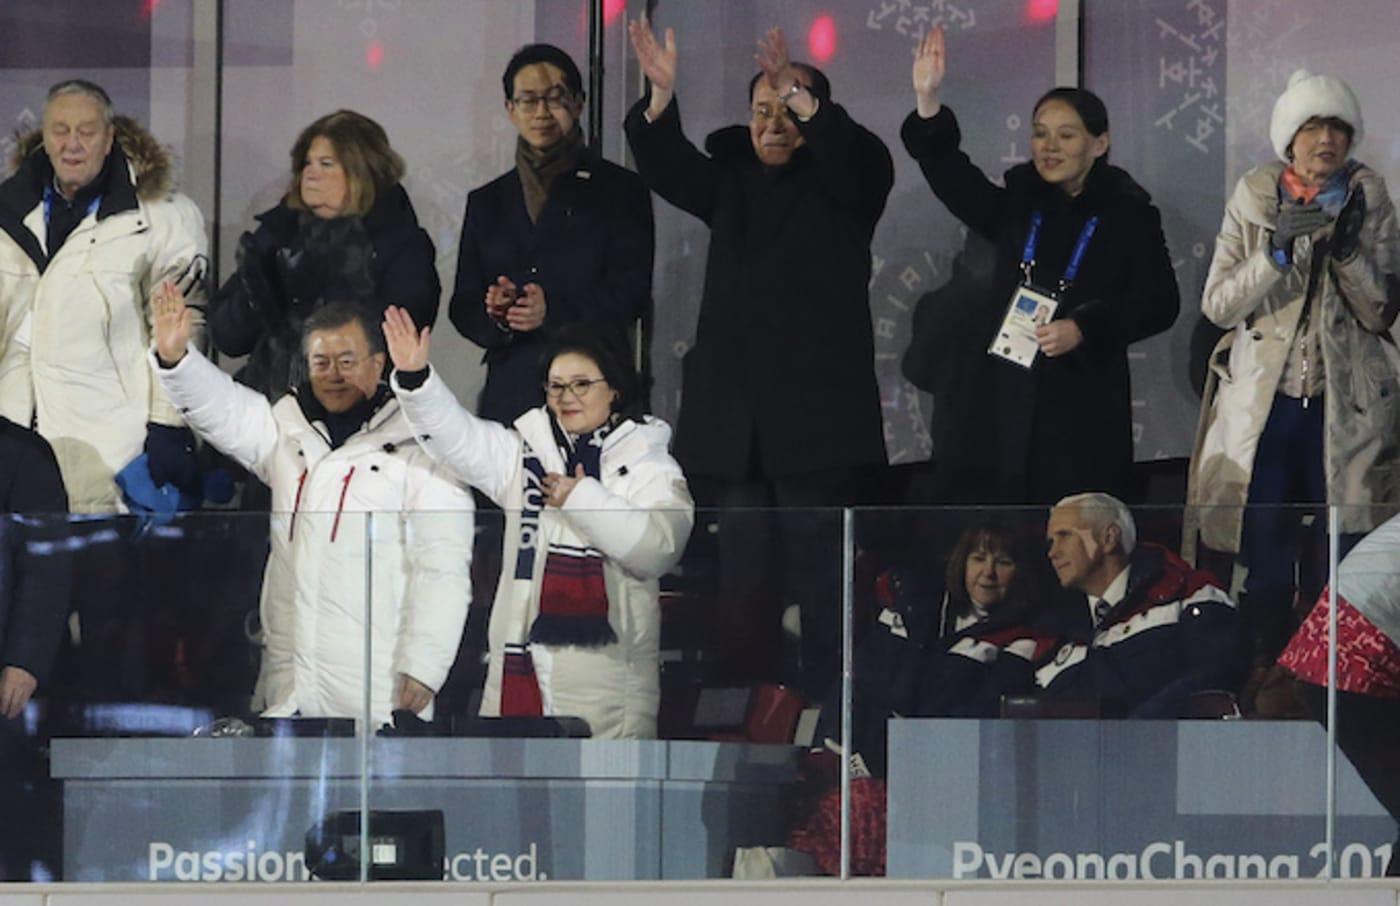 Mike Pence and his wife look on during the Opening Ceremony.